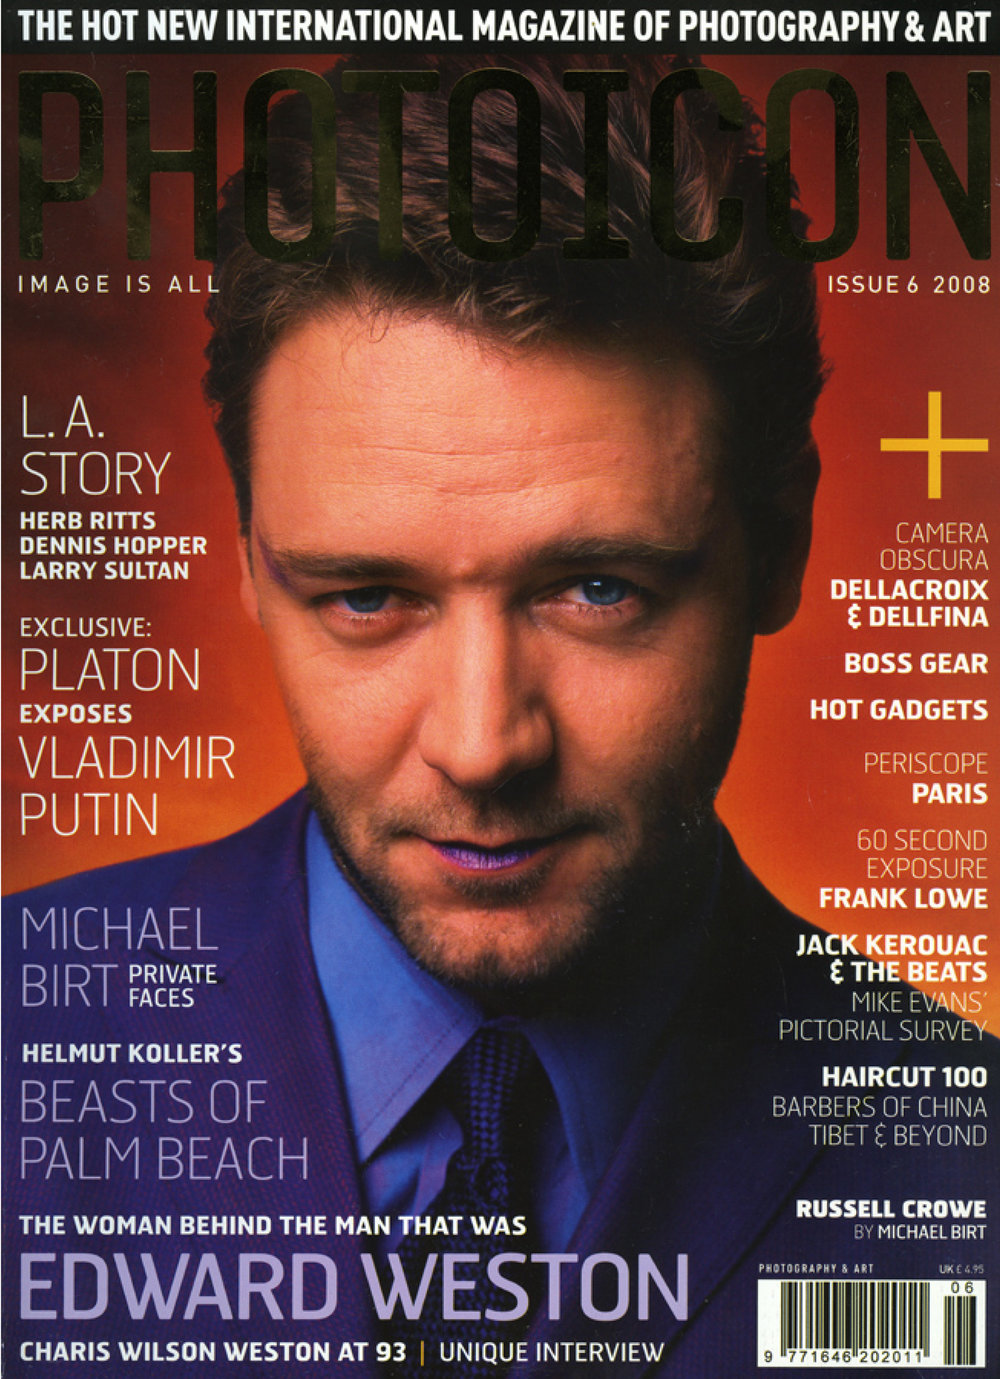 photoicon 01 cover.jpg